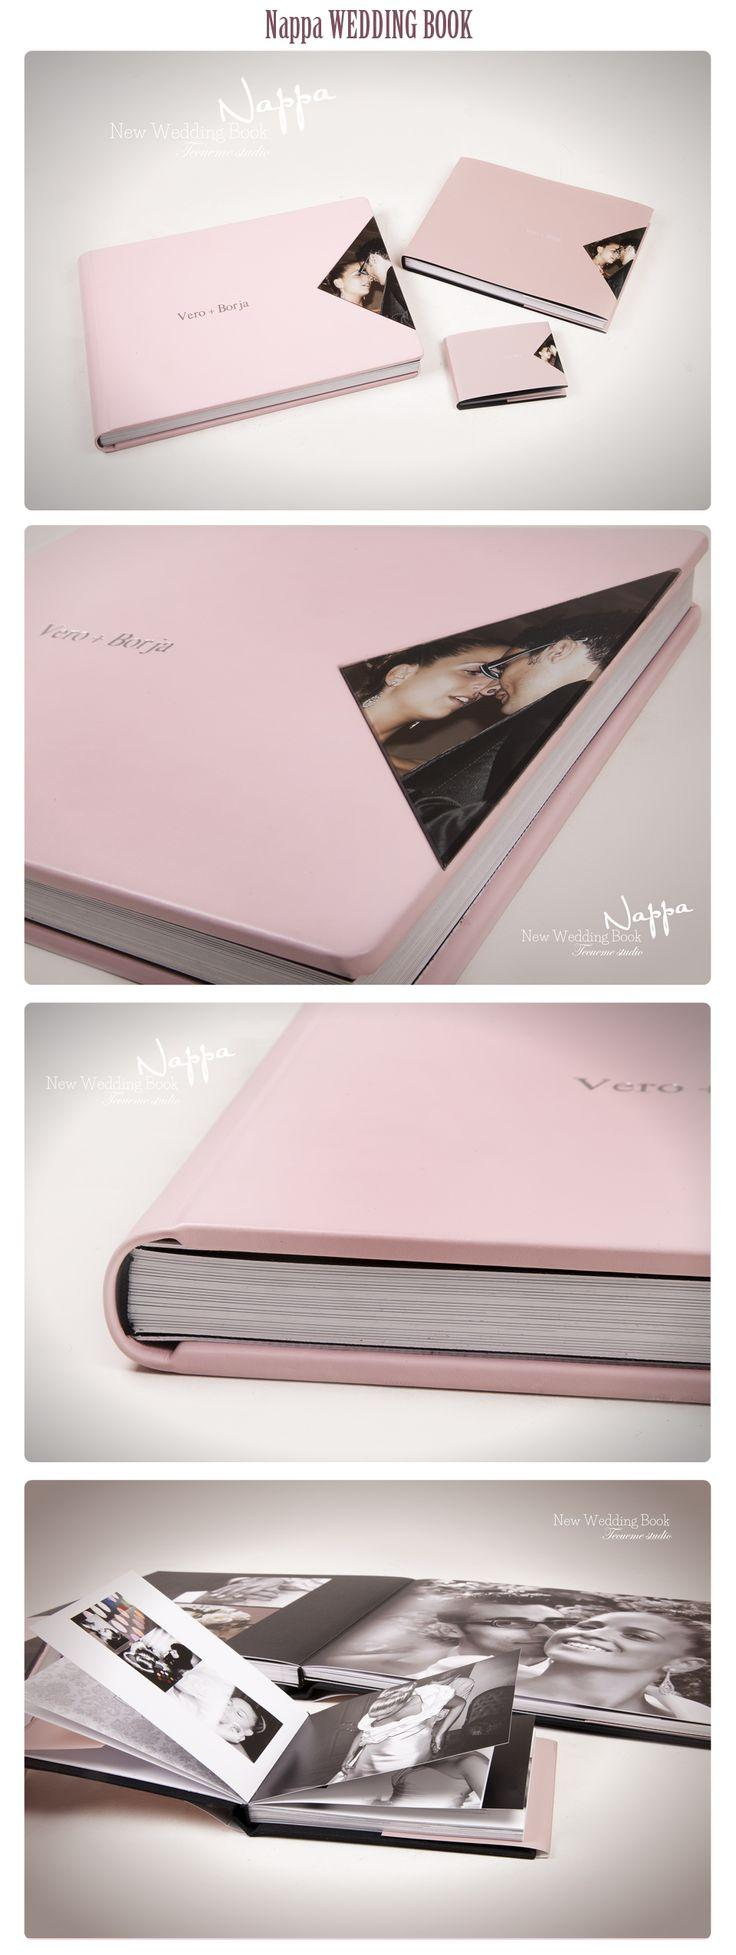 Wedding - Interesting Idea To Have A Triangular Image Segment Along The Edge Of The Cover.